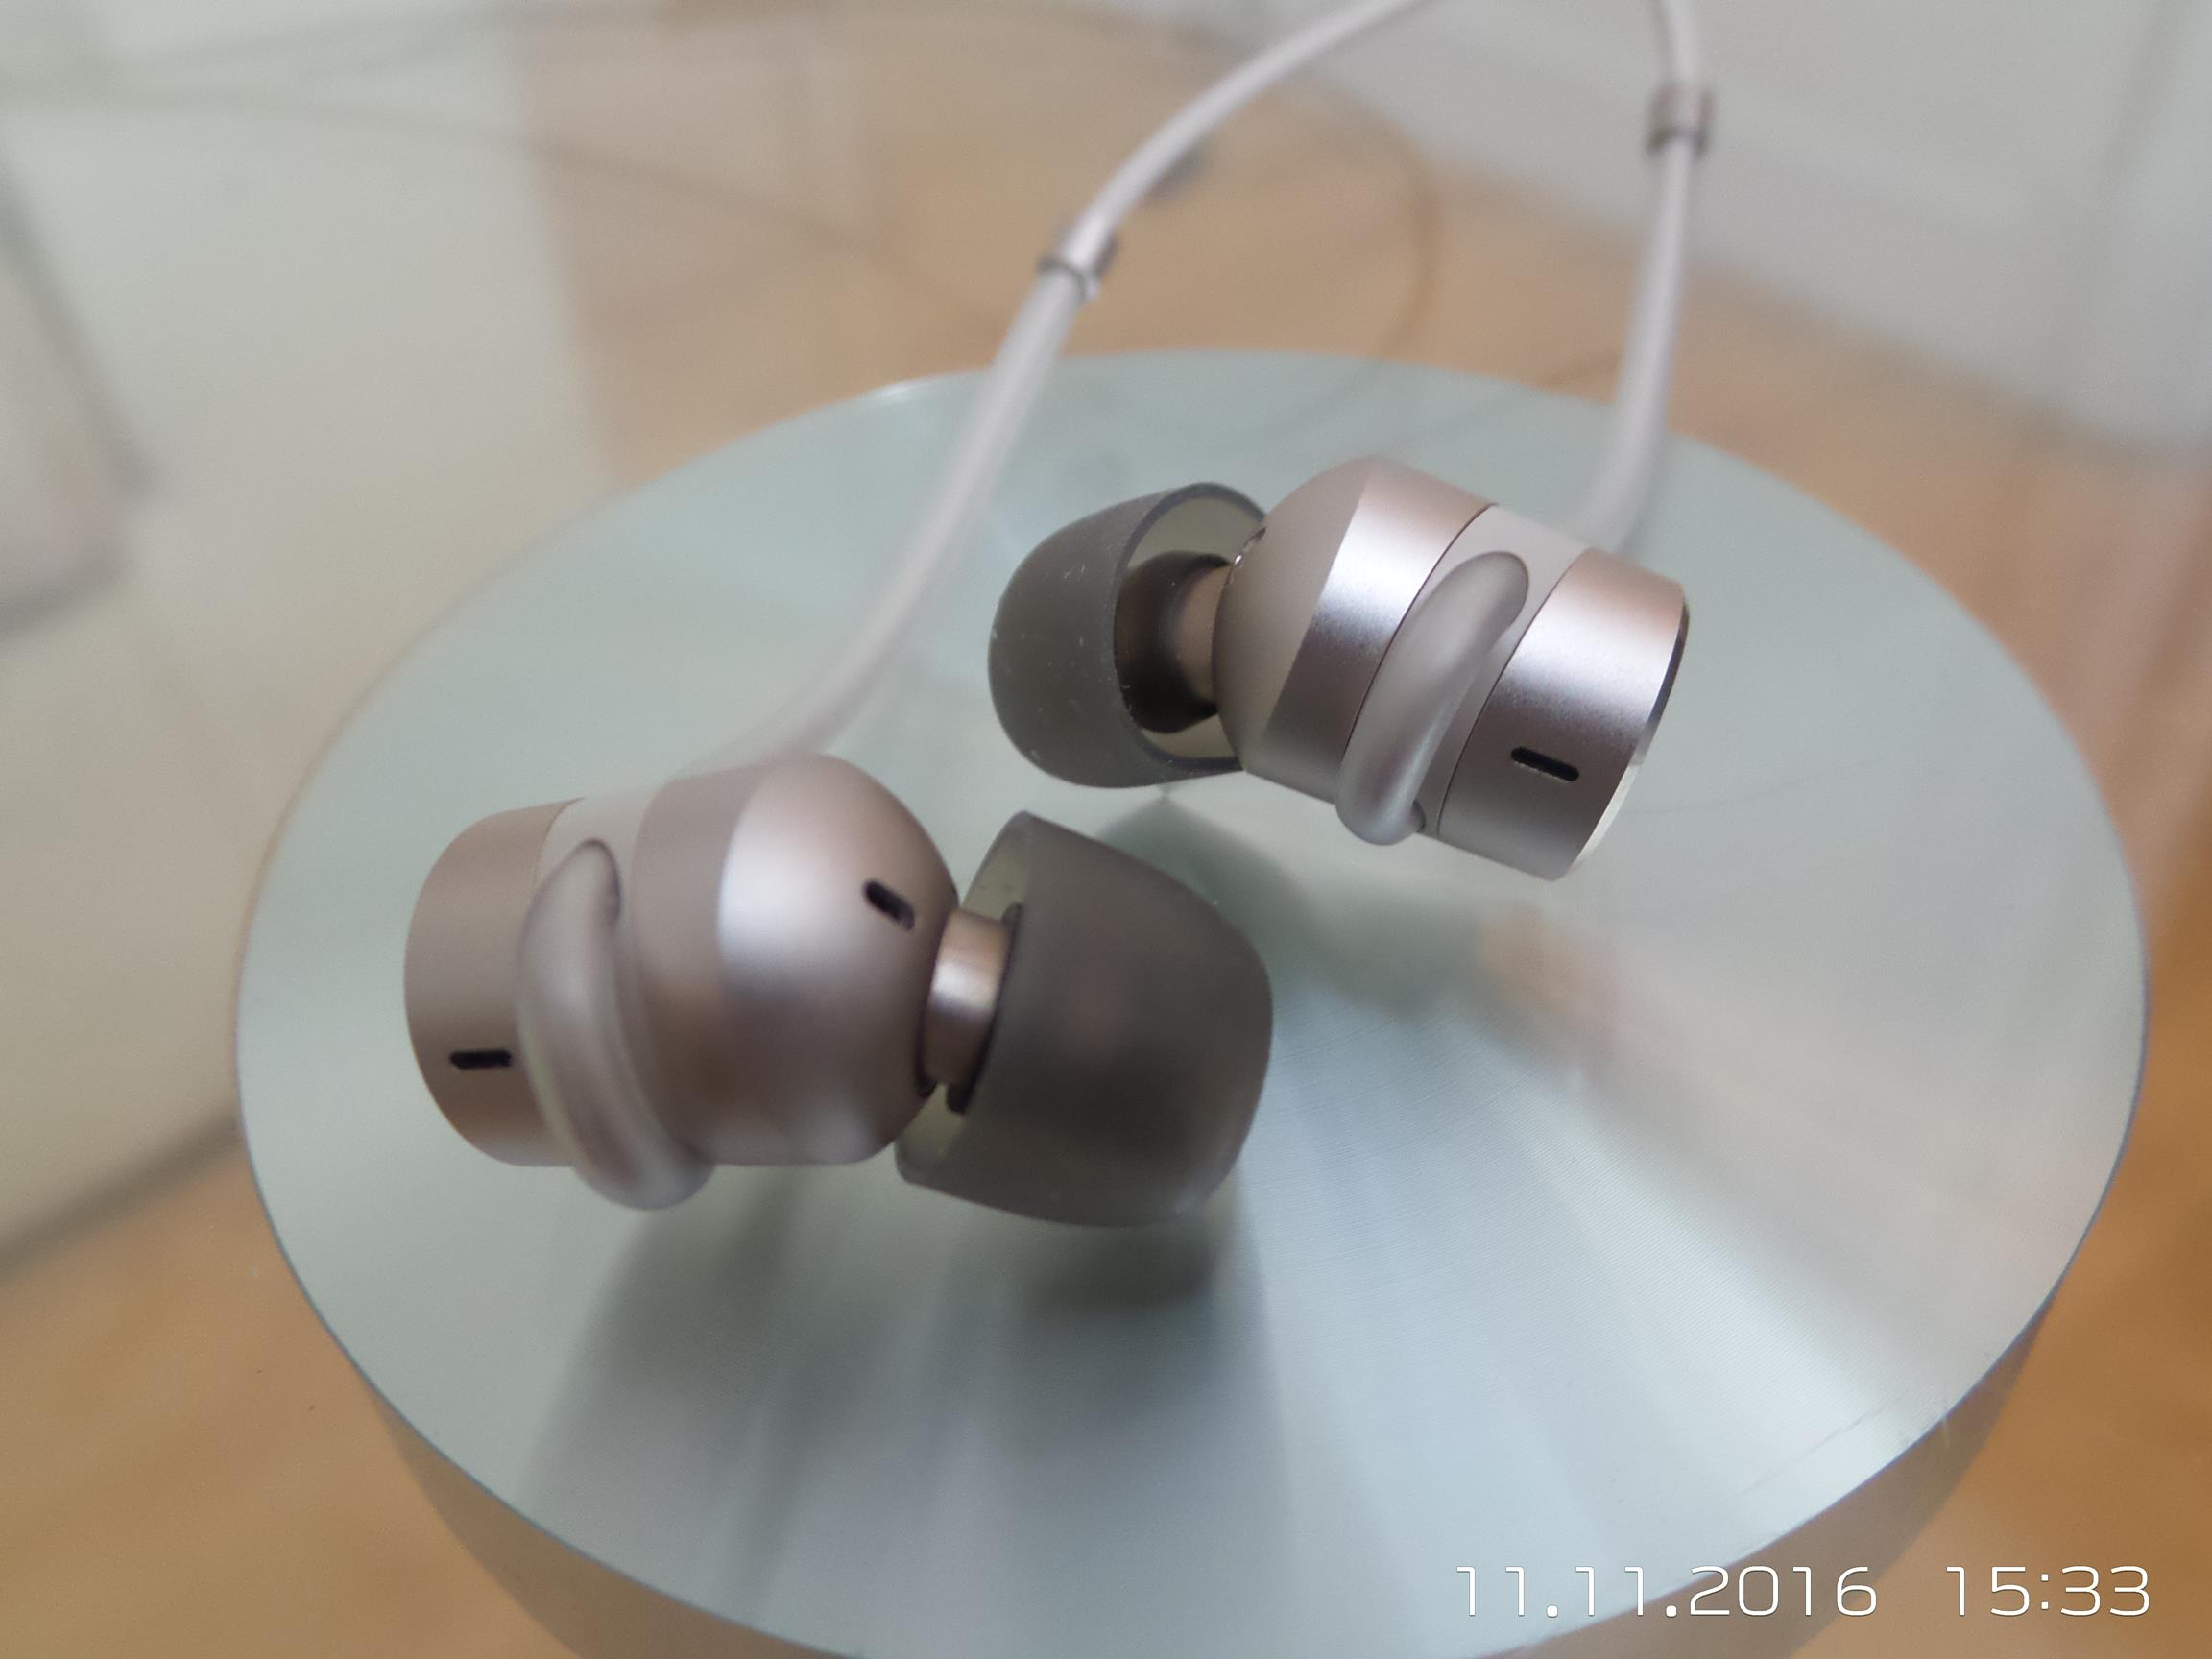 Huawei AM185 Noise Cancelling Earphone Quick Review